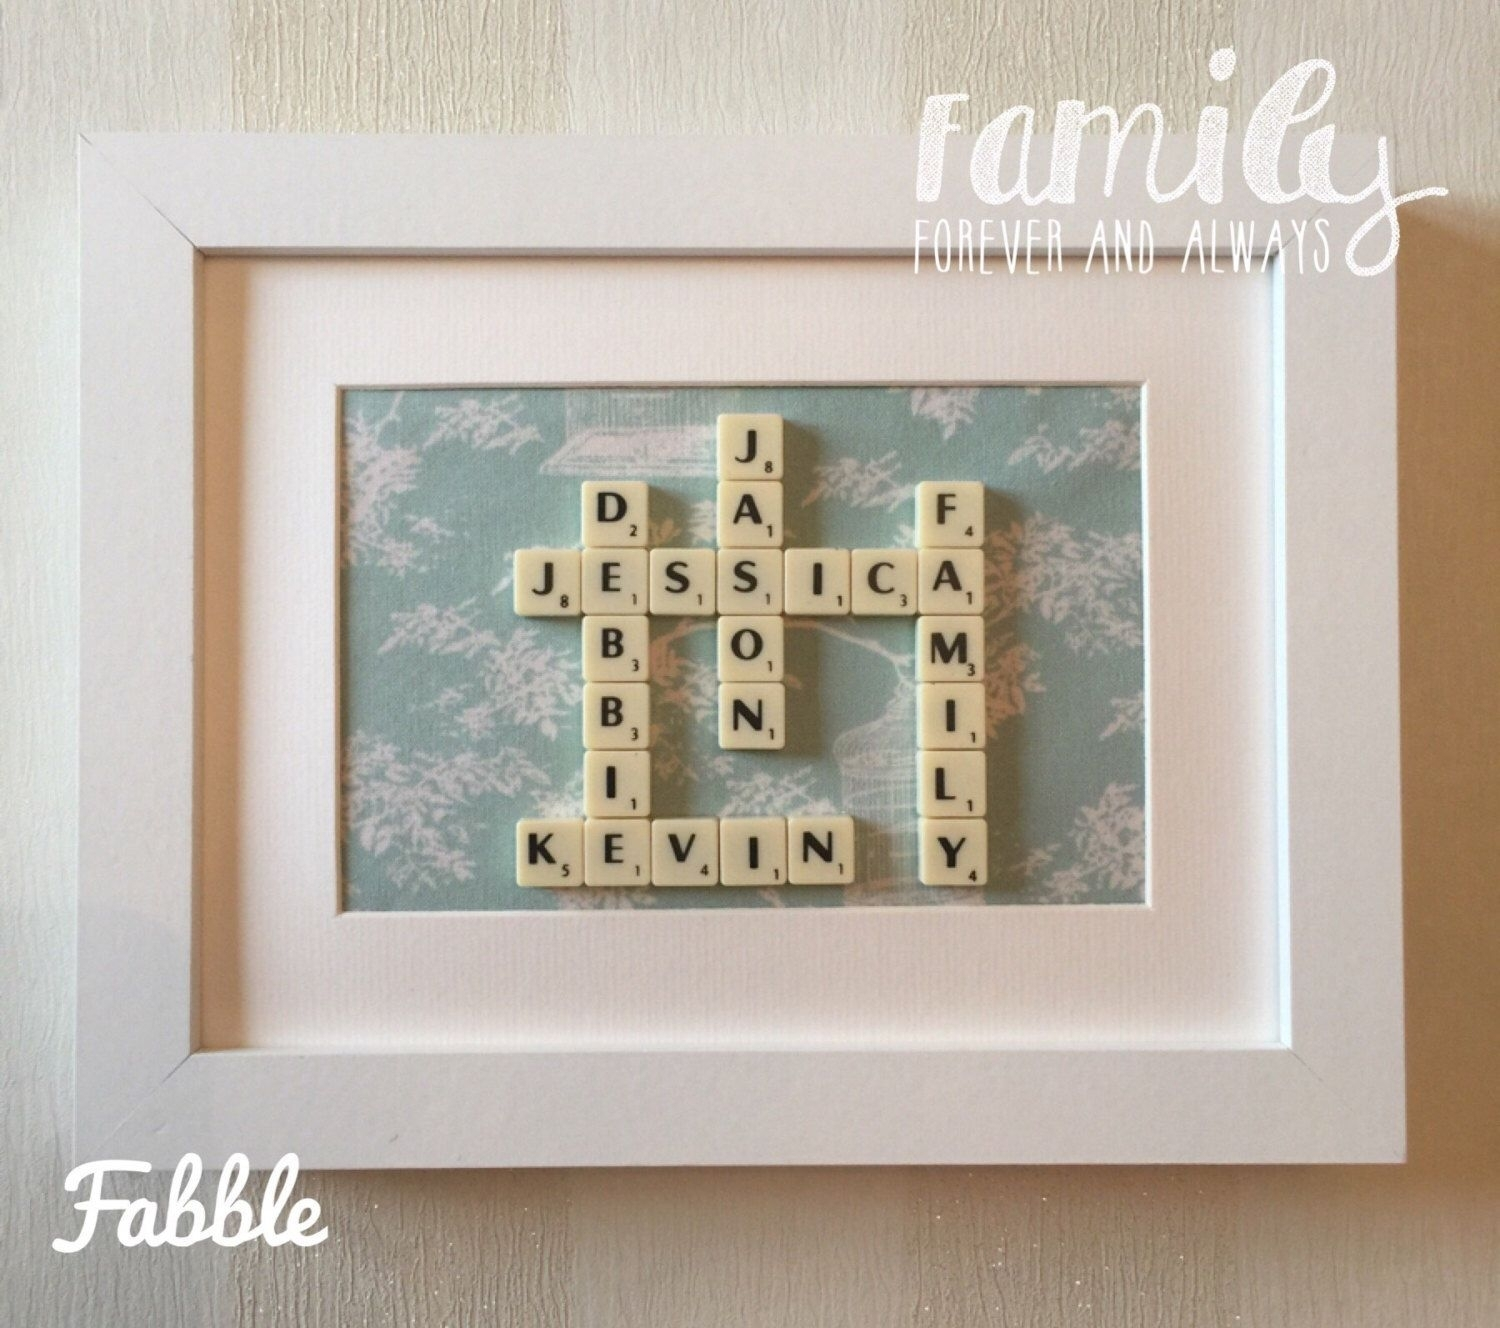 Scrabble Tile Wall Decor – Scrabble Tile Wall Decor Gift For Most Popular Fabric Square Wall Art (View 8 of 15)